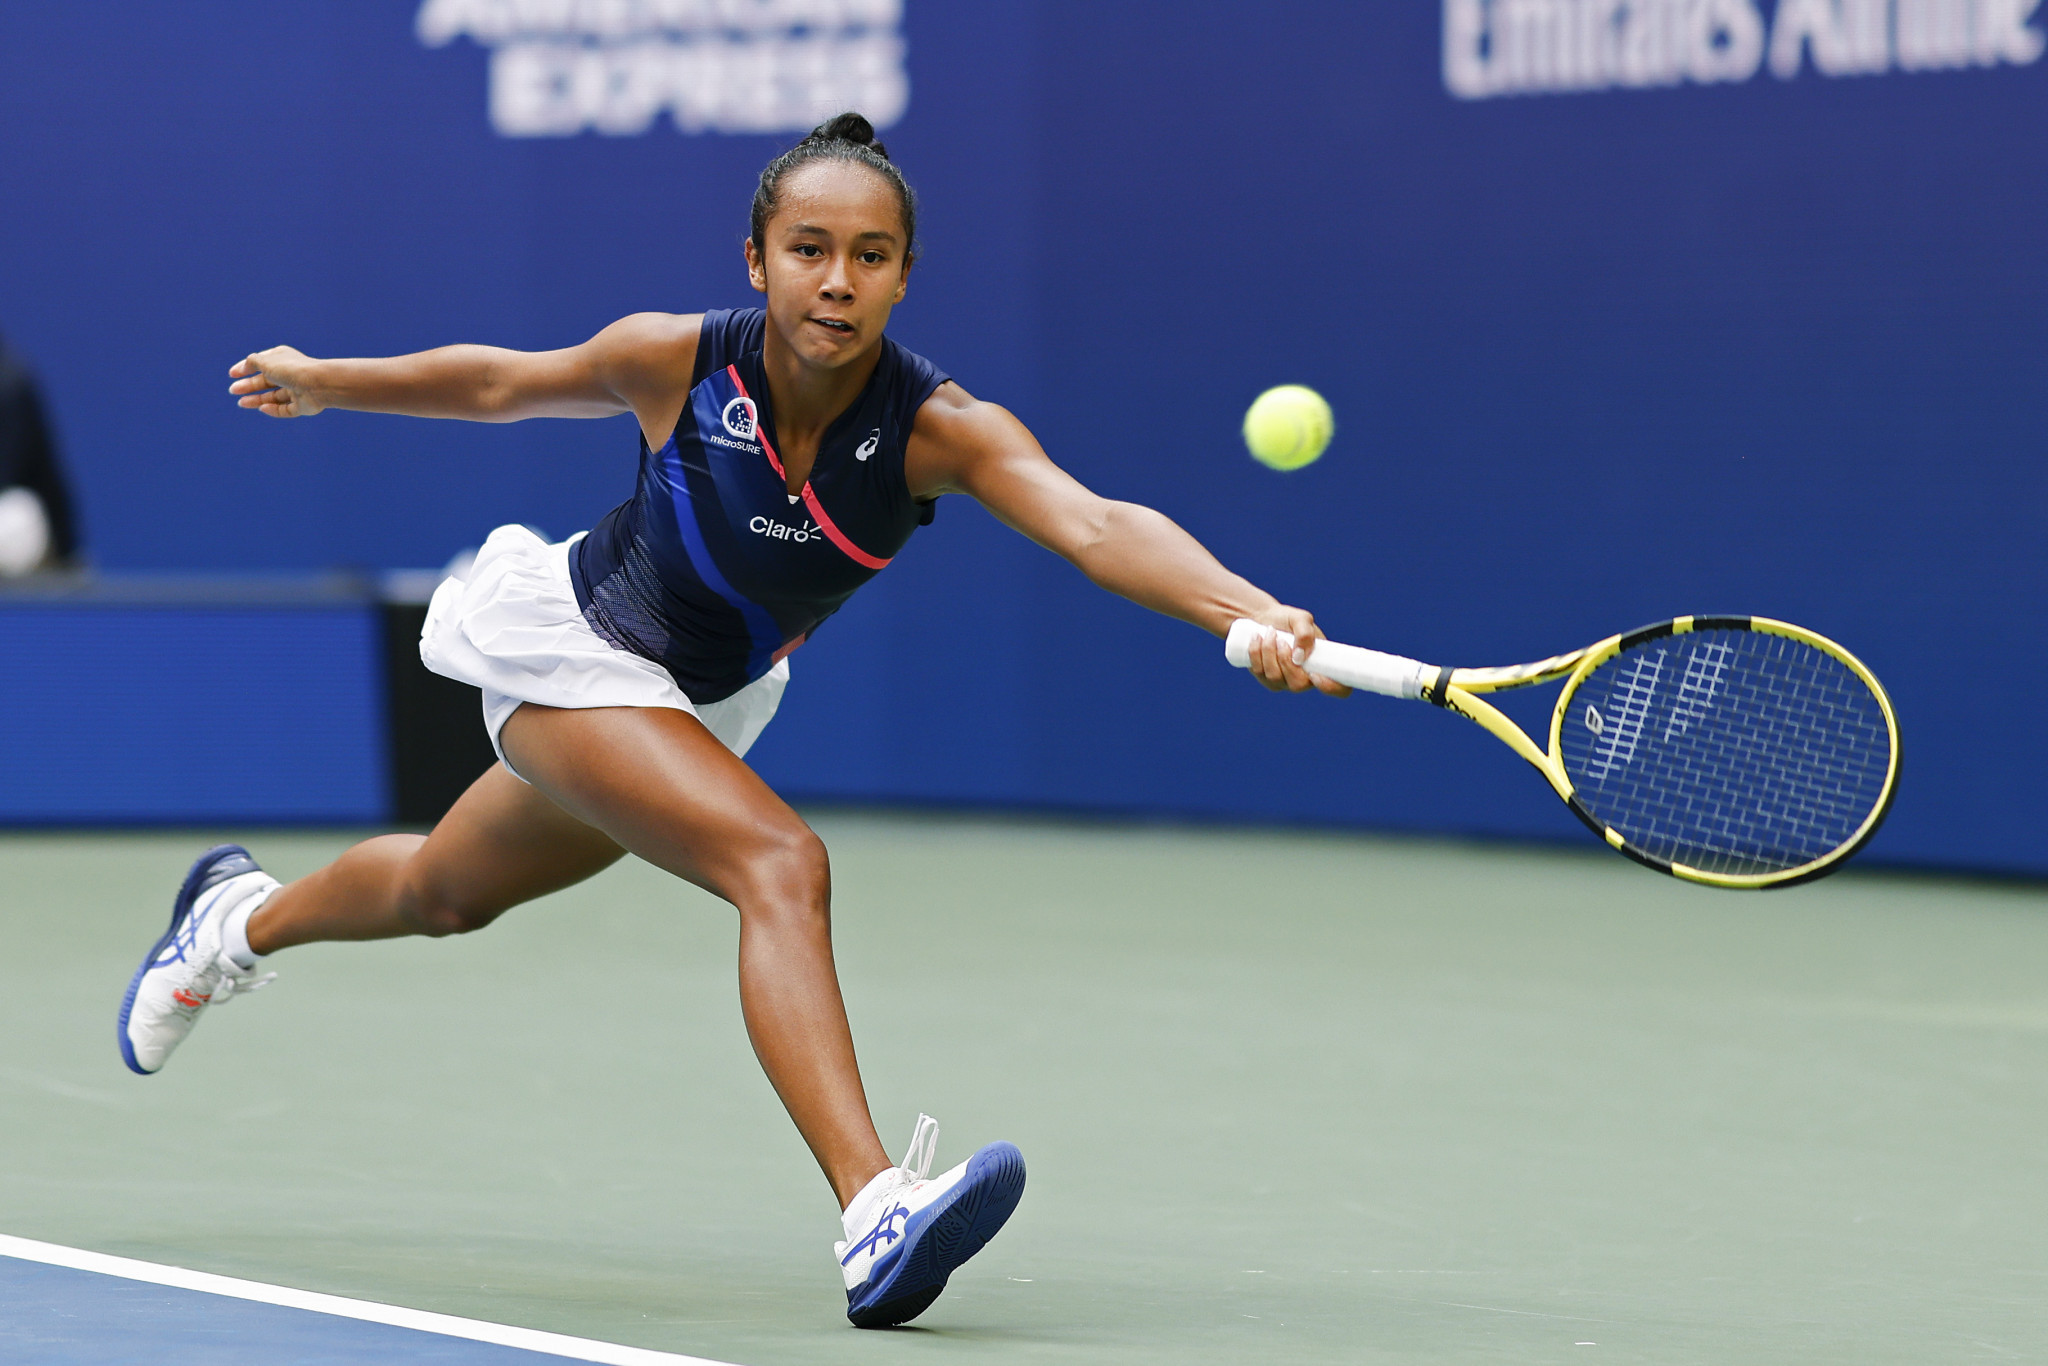 Canadian Leylah Fernandez, 19, knocked out two former champions and three of the top five seeds en route to the final, but could not overcome Raducanu ©Getty Images